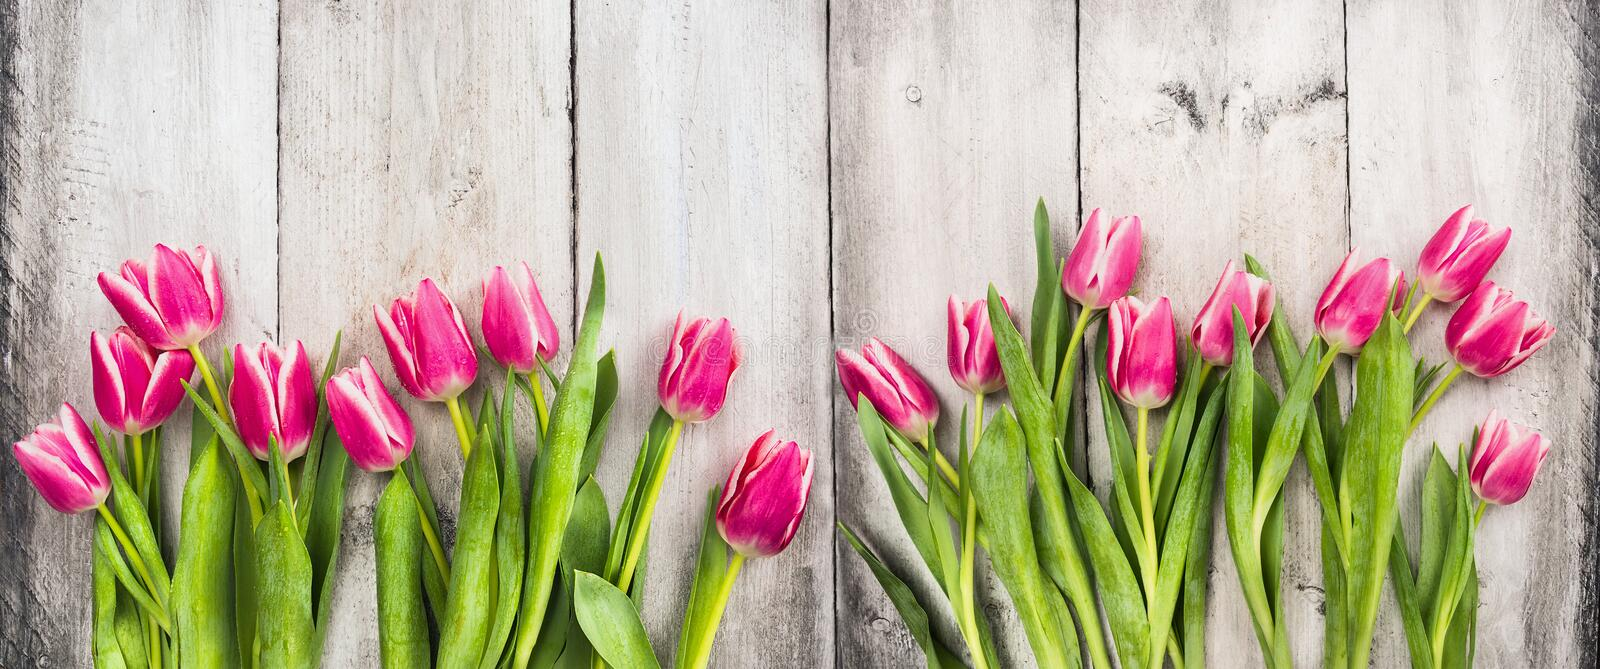 Pink tulips on white wooden background, banner royalty free stock image